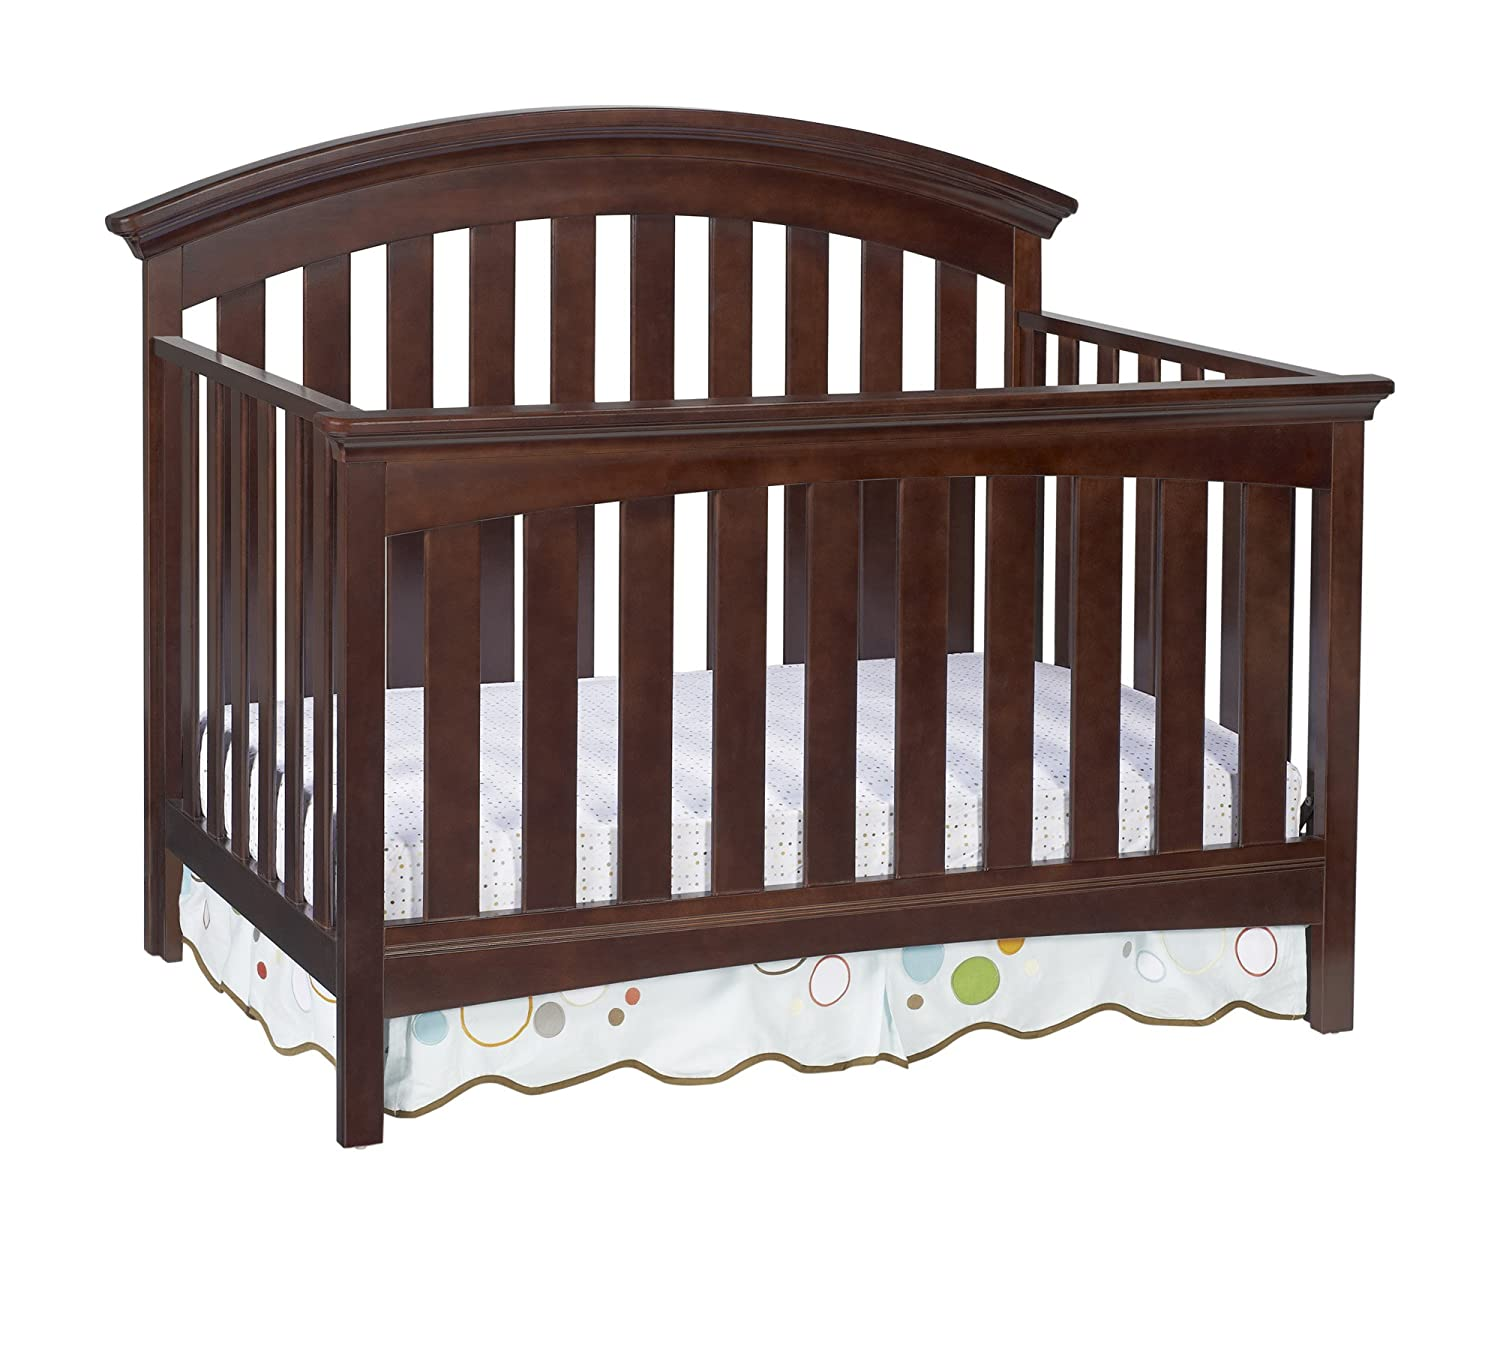 furniture paper crib full sale for cribs ideas inexpensive mobile girl diy uk tent decor nursery idea peapod with decorating daybed drawers day pink interiors travel rooms size cloud of daybeds cheap